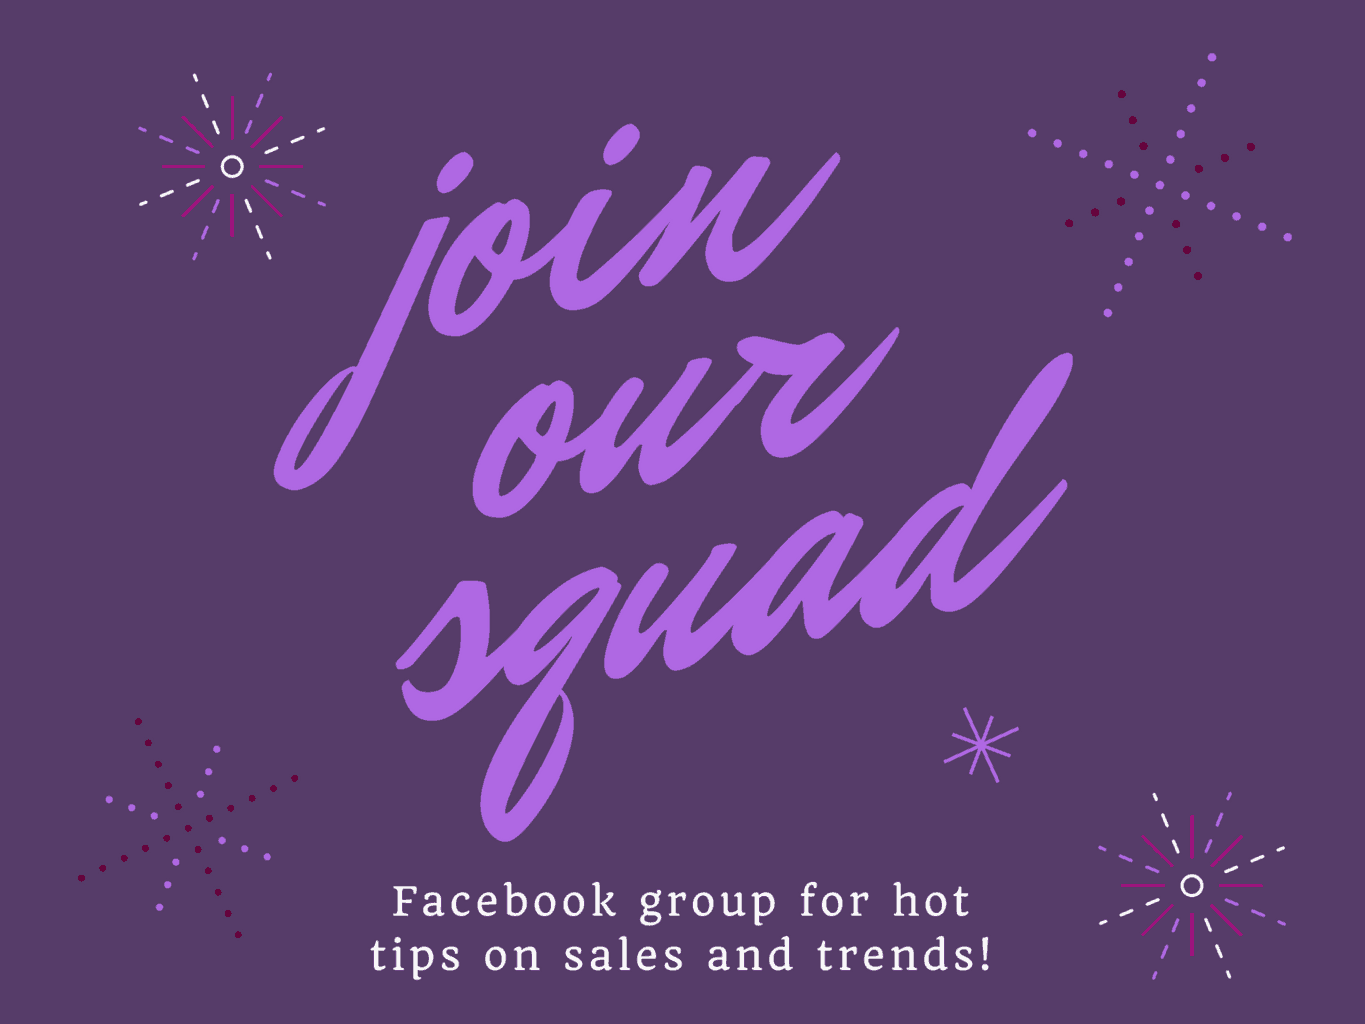 Join the Plus Size Nerd Facebook group!